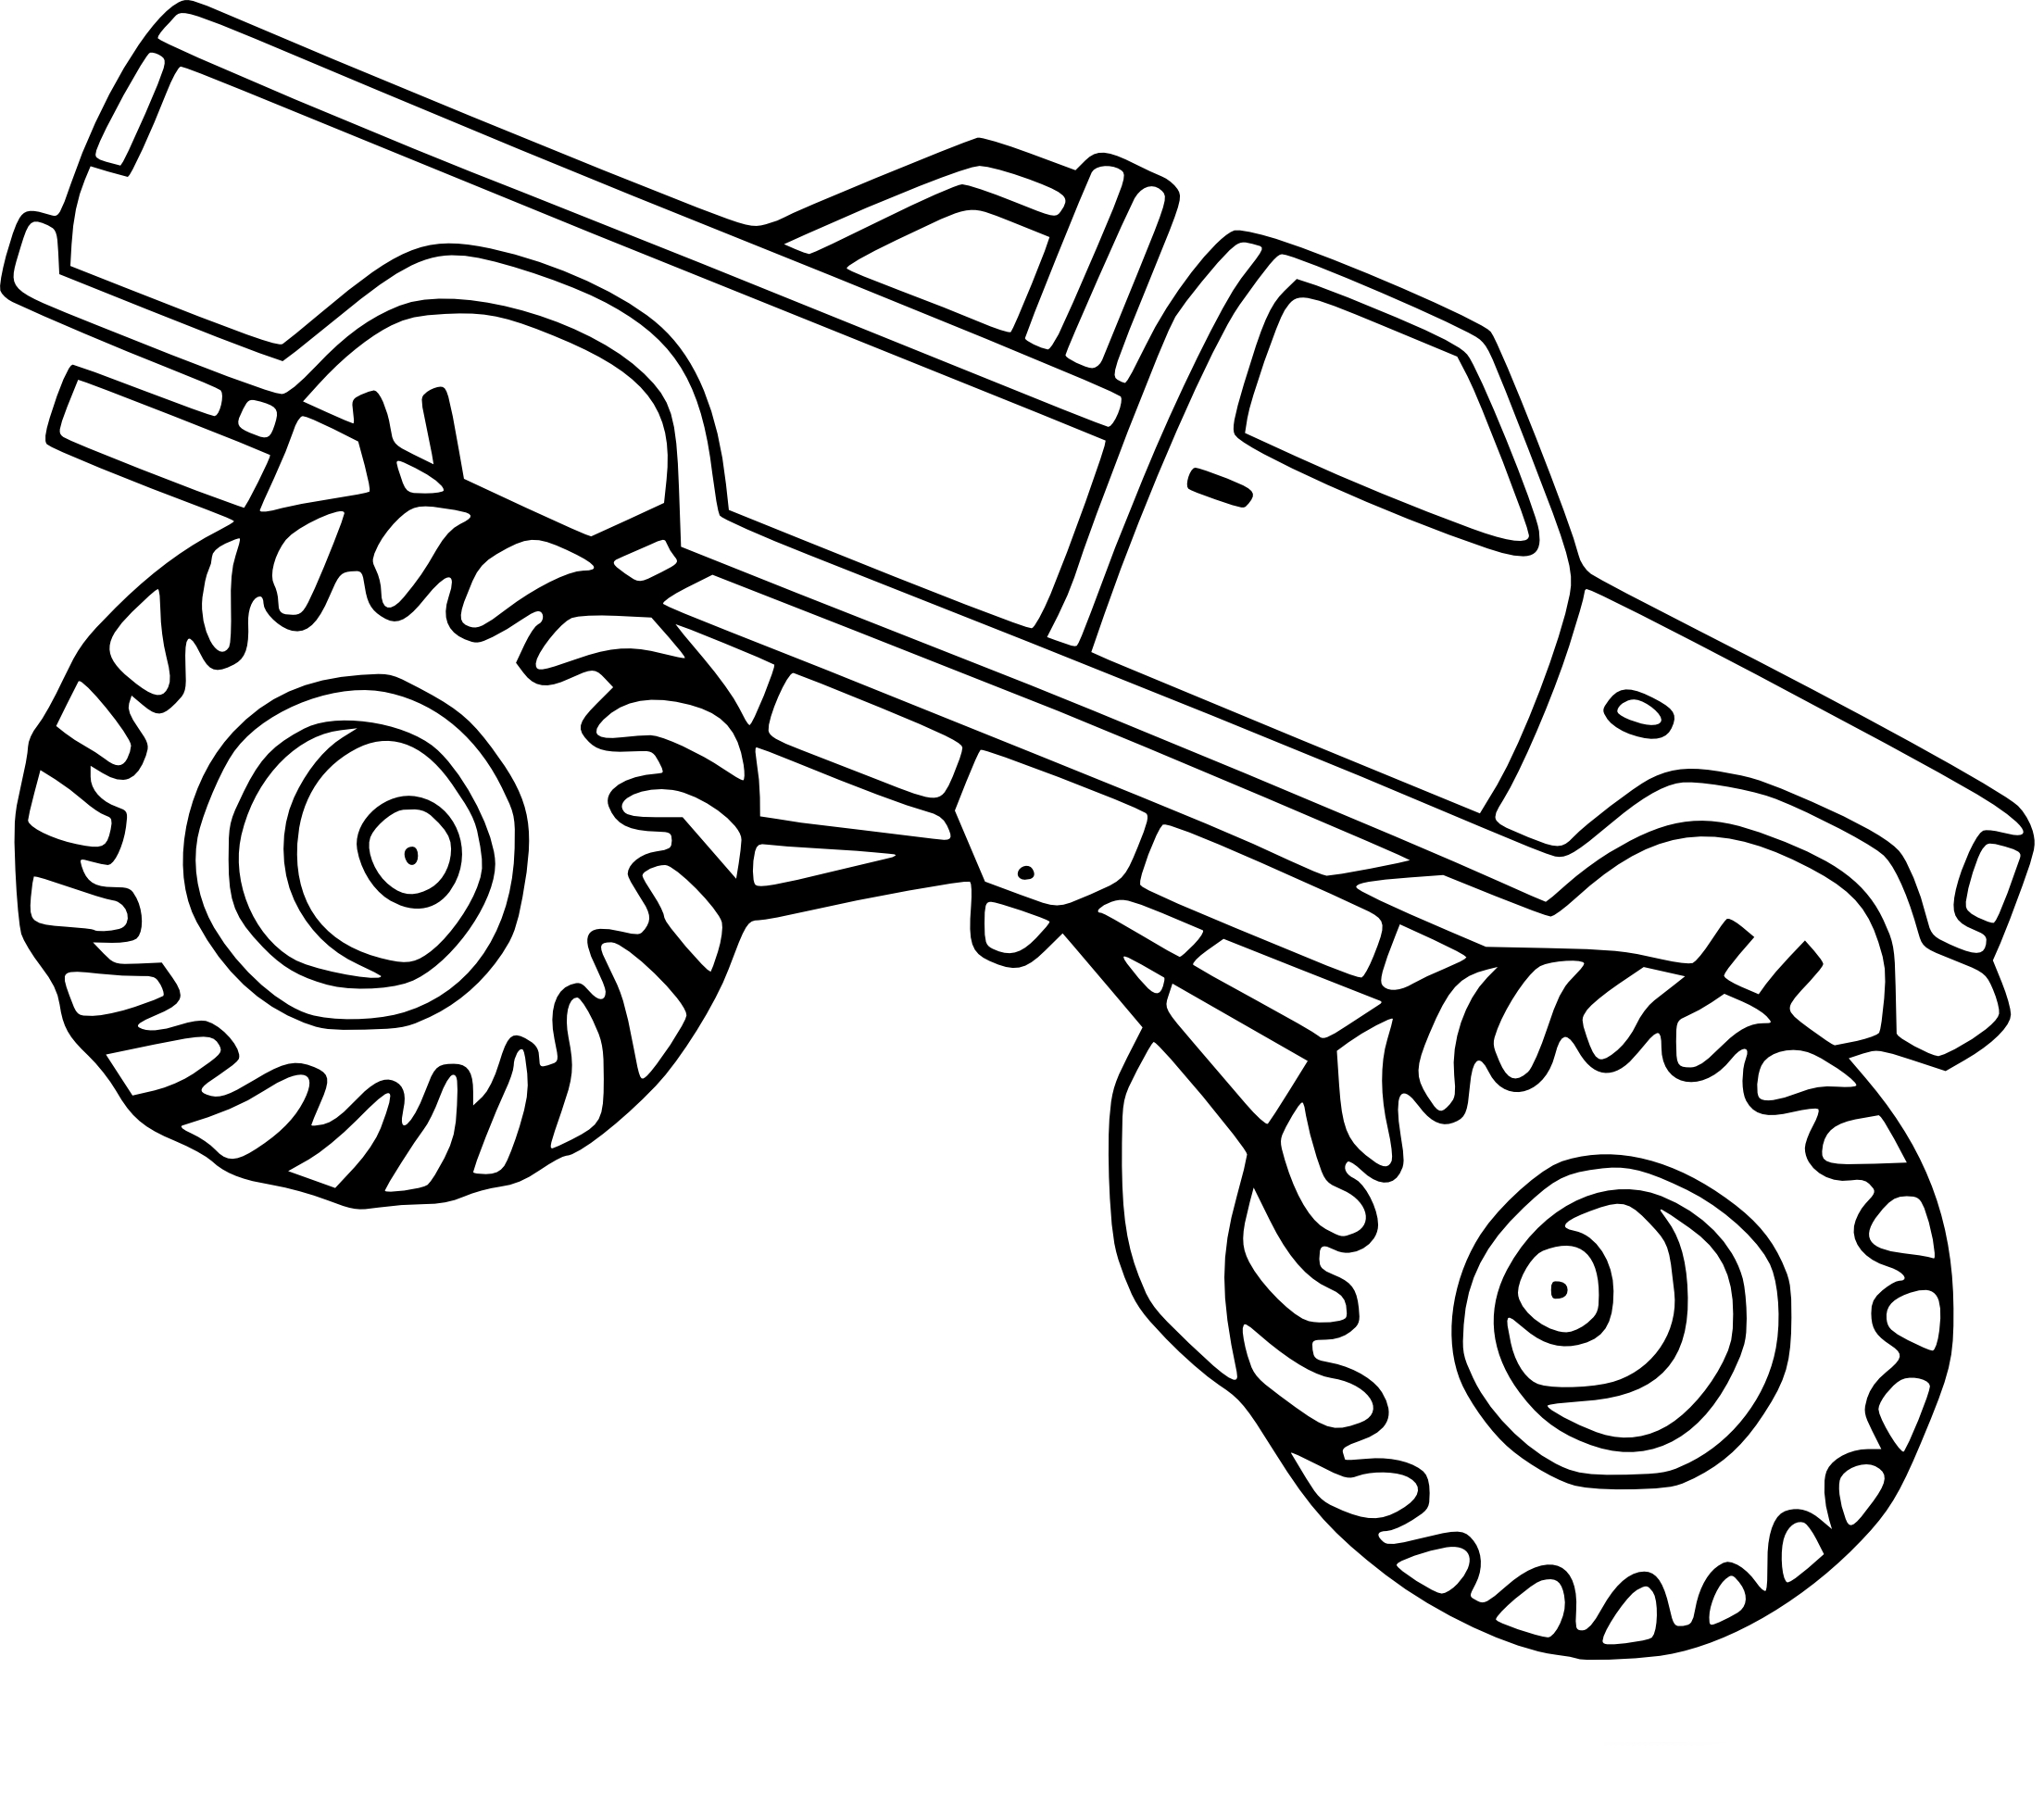 Coloriage monster truck facile imprimer sur coloriages info - Coloriage de monster ...